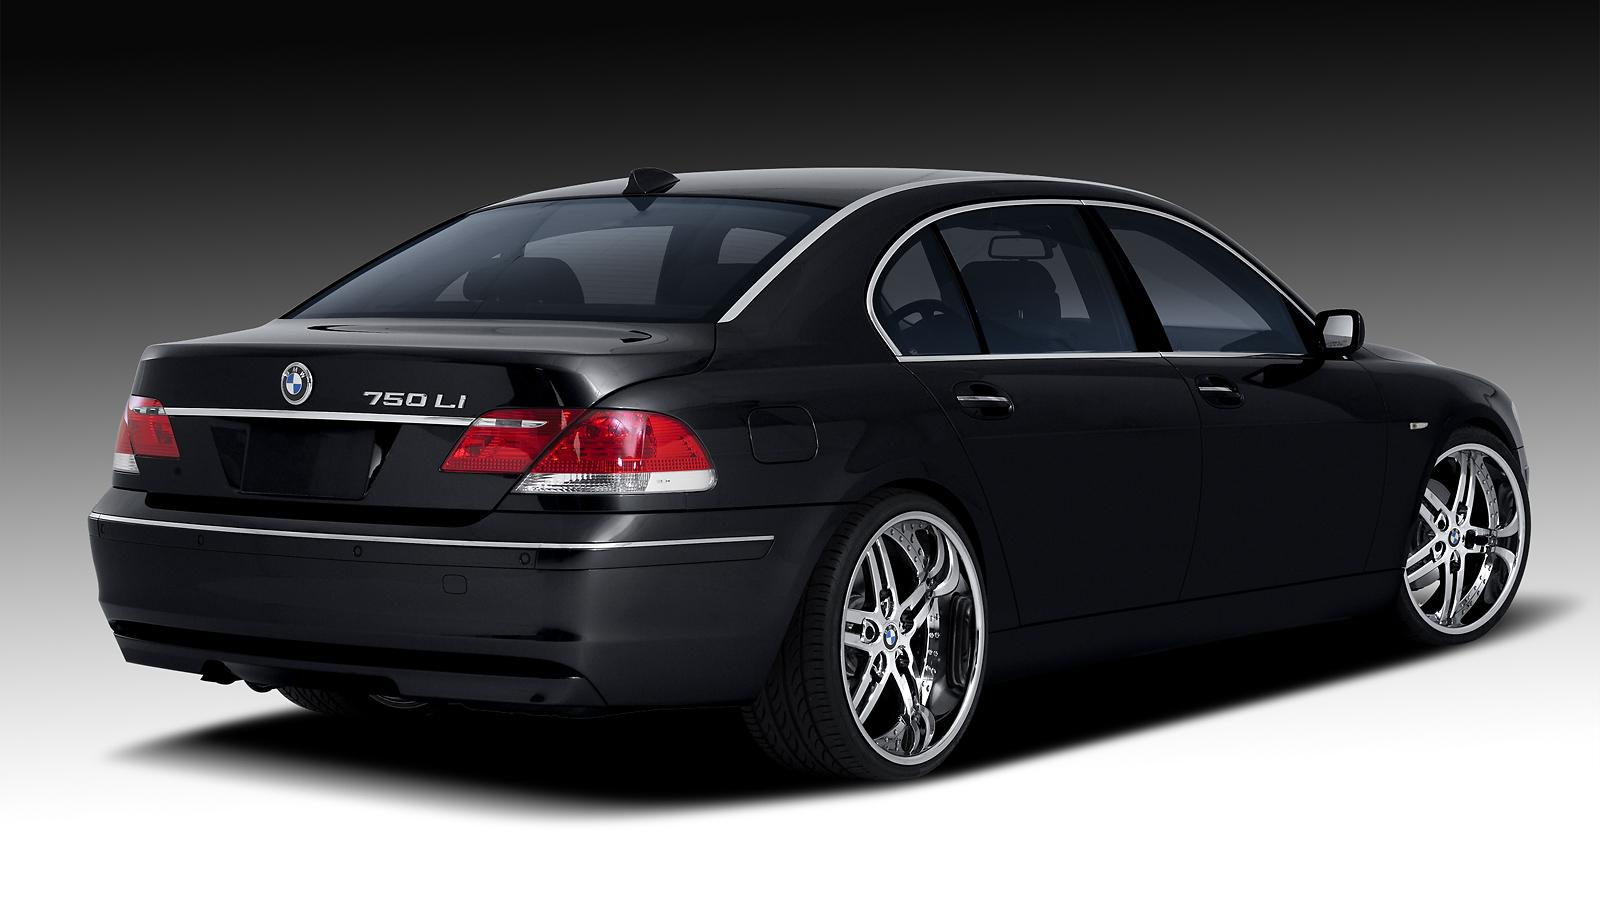 2007 bmw 7 series information and photos zombiedrive. Black Bedroom Furniture Sets. Home Design Ideas